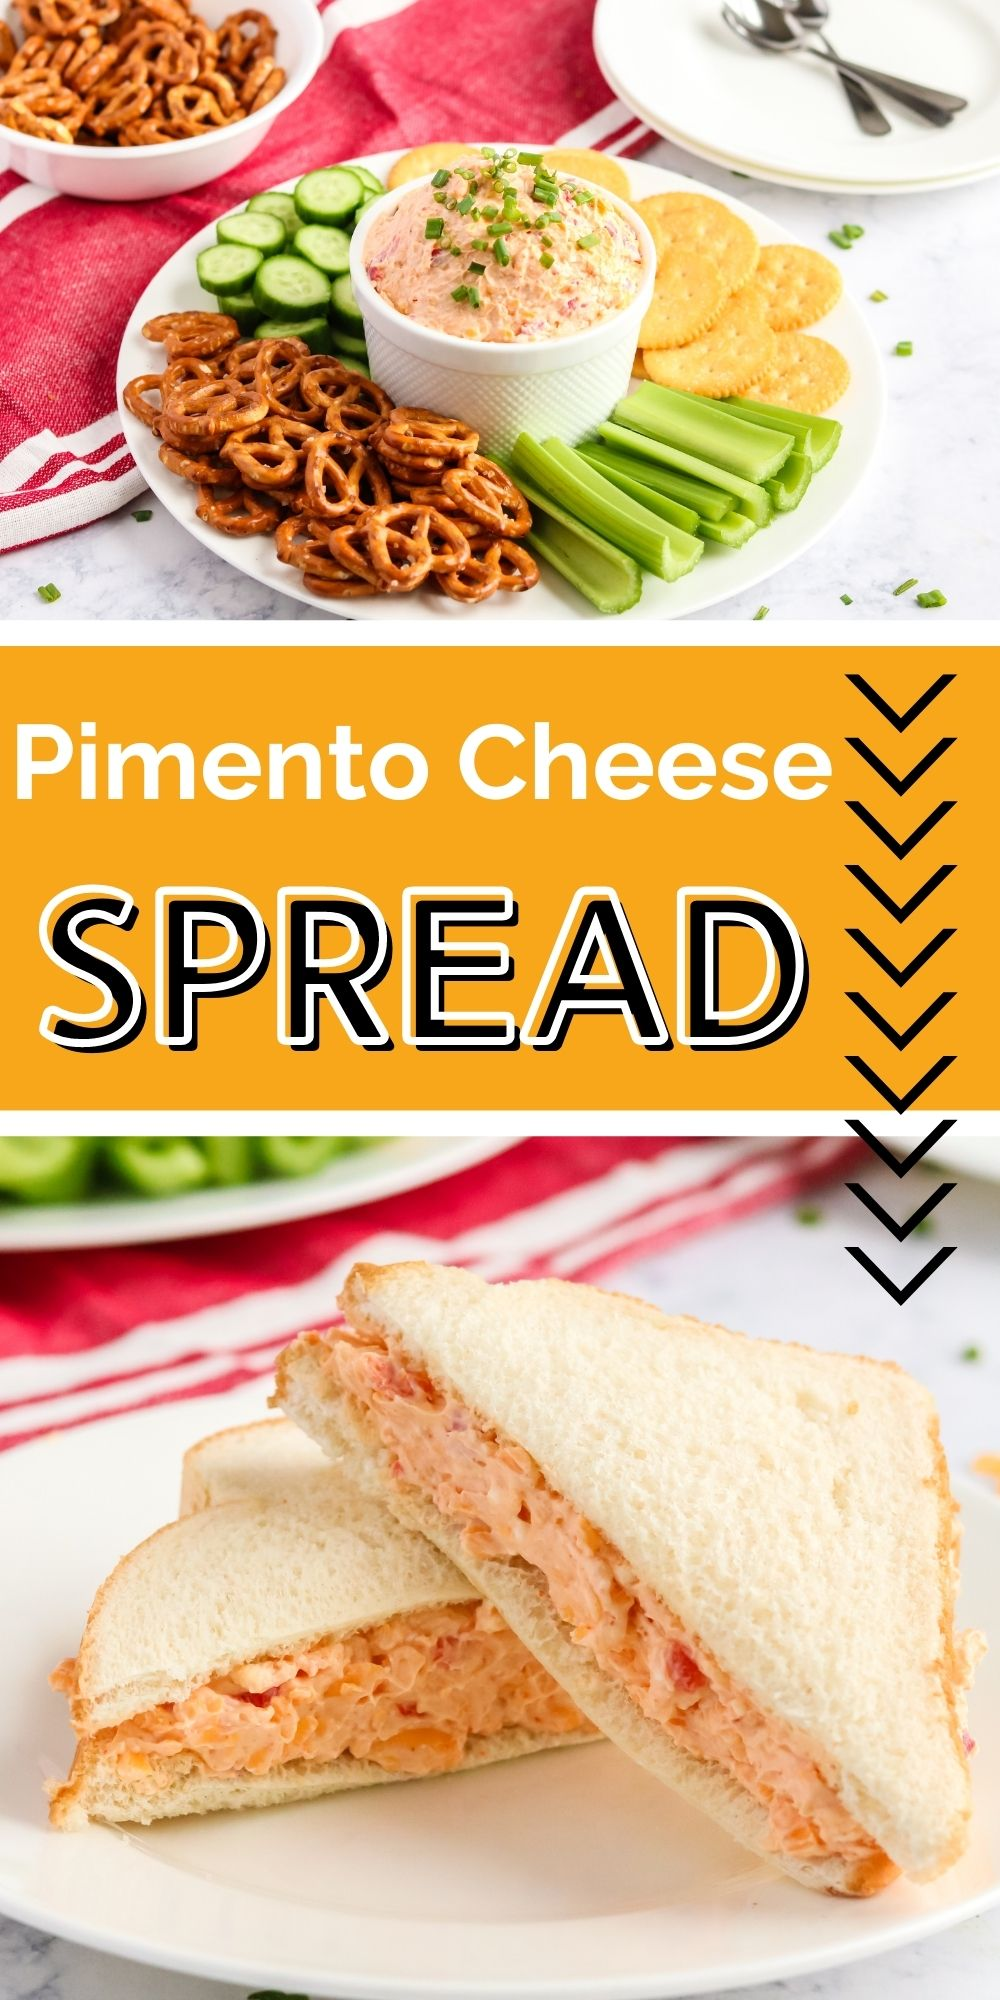 My version of Pimento Cheese Spread uses the standard blend of cream cheese, cheddar, mayo, and diced pimentos – with just a touch of cayenne to add the heat that's missing from the pimentos themselves. via @familyfresh